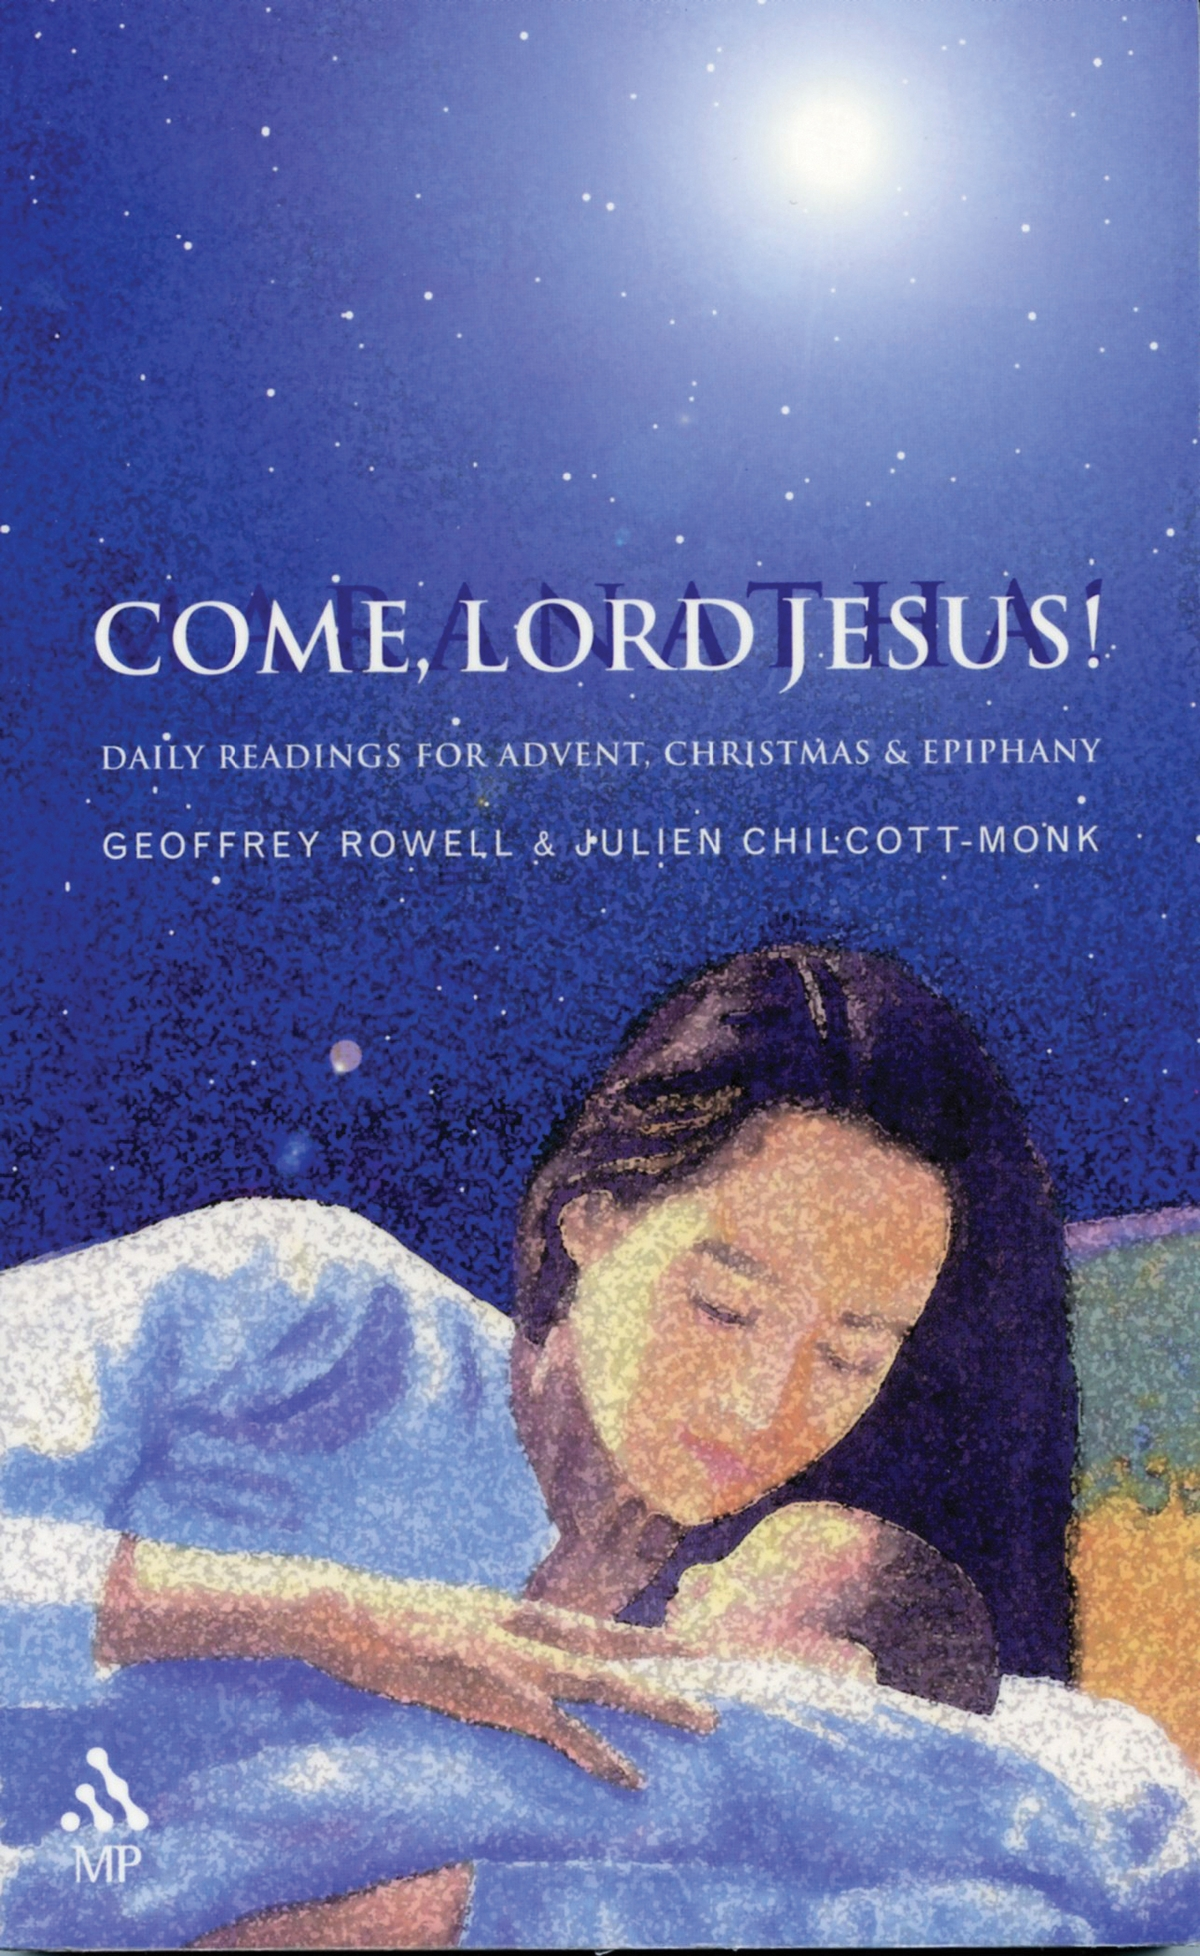 ChurchPublishing.org: Come, Lord Jesus!